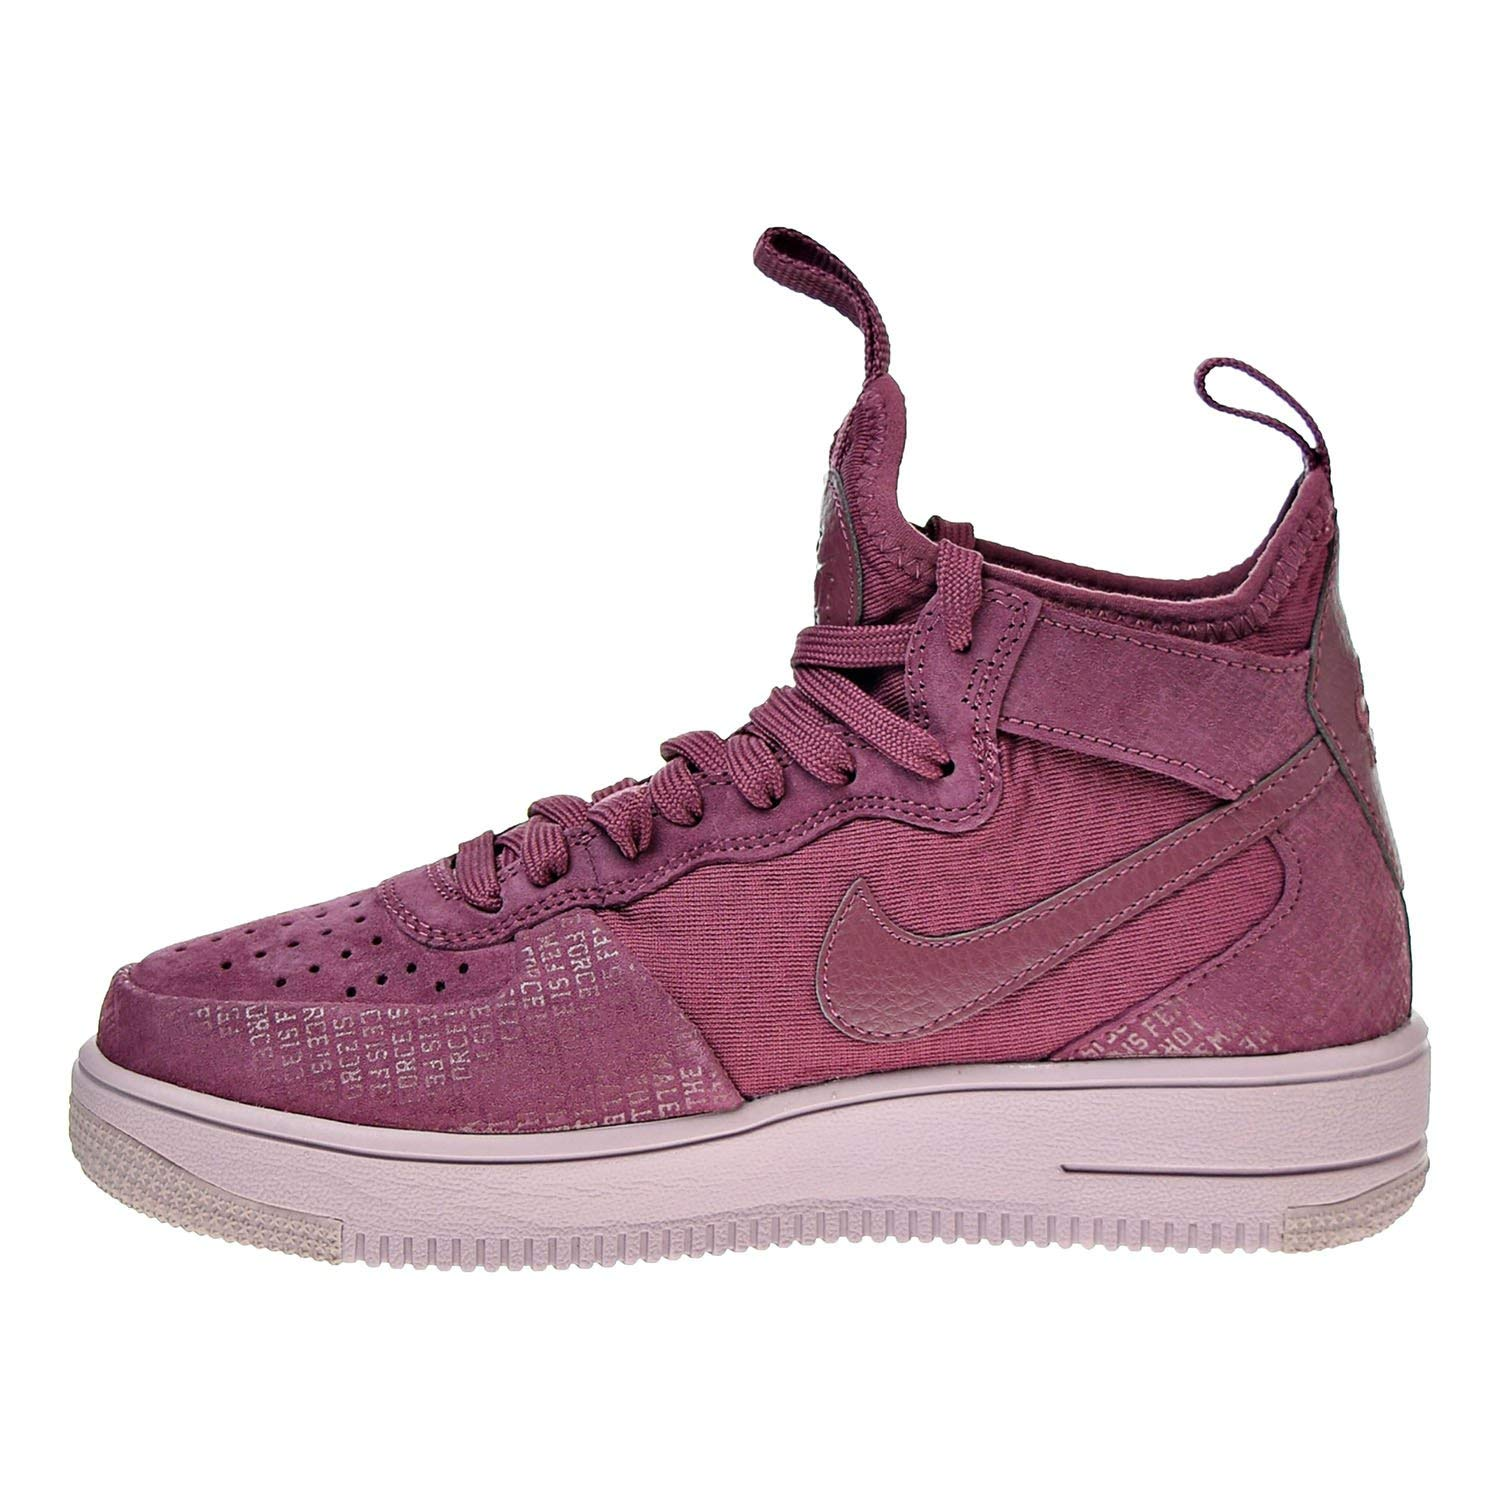 ec7b5e7f13 Nike Womens air Force 1 Ultra Force Hight Top Lace Up Running, Purple, Size  6.5 US / 4.5 UK US: Amazon.co.uk: Shoes & Bags